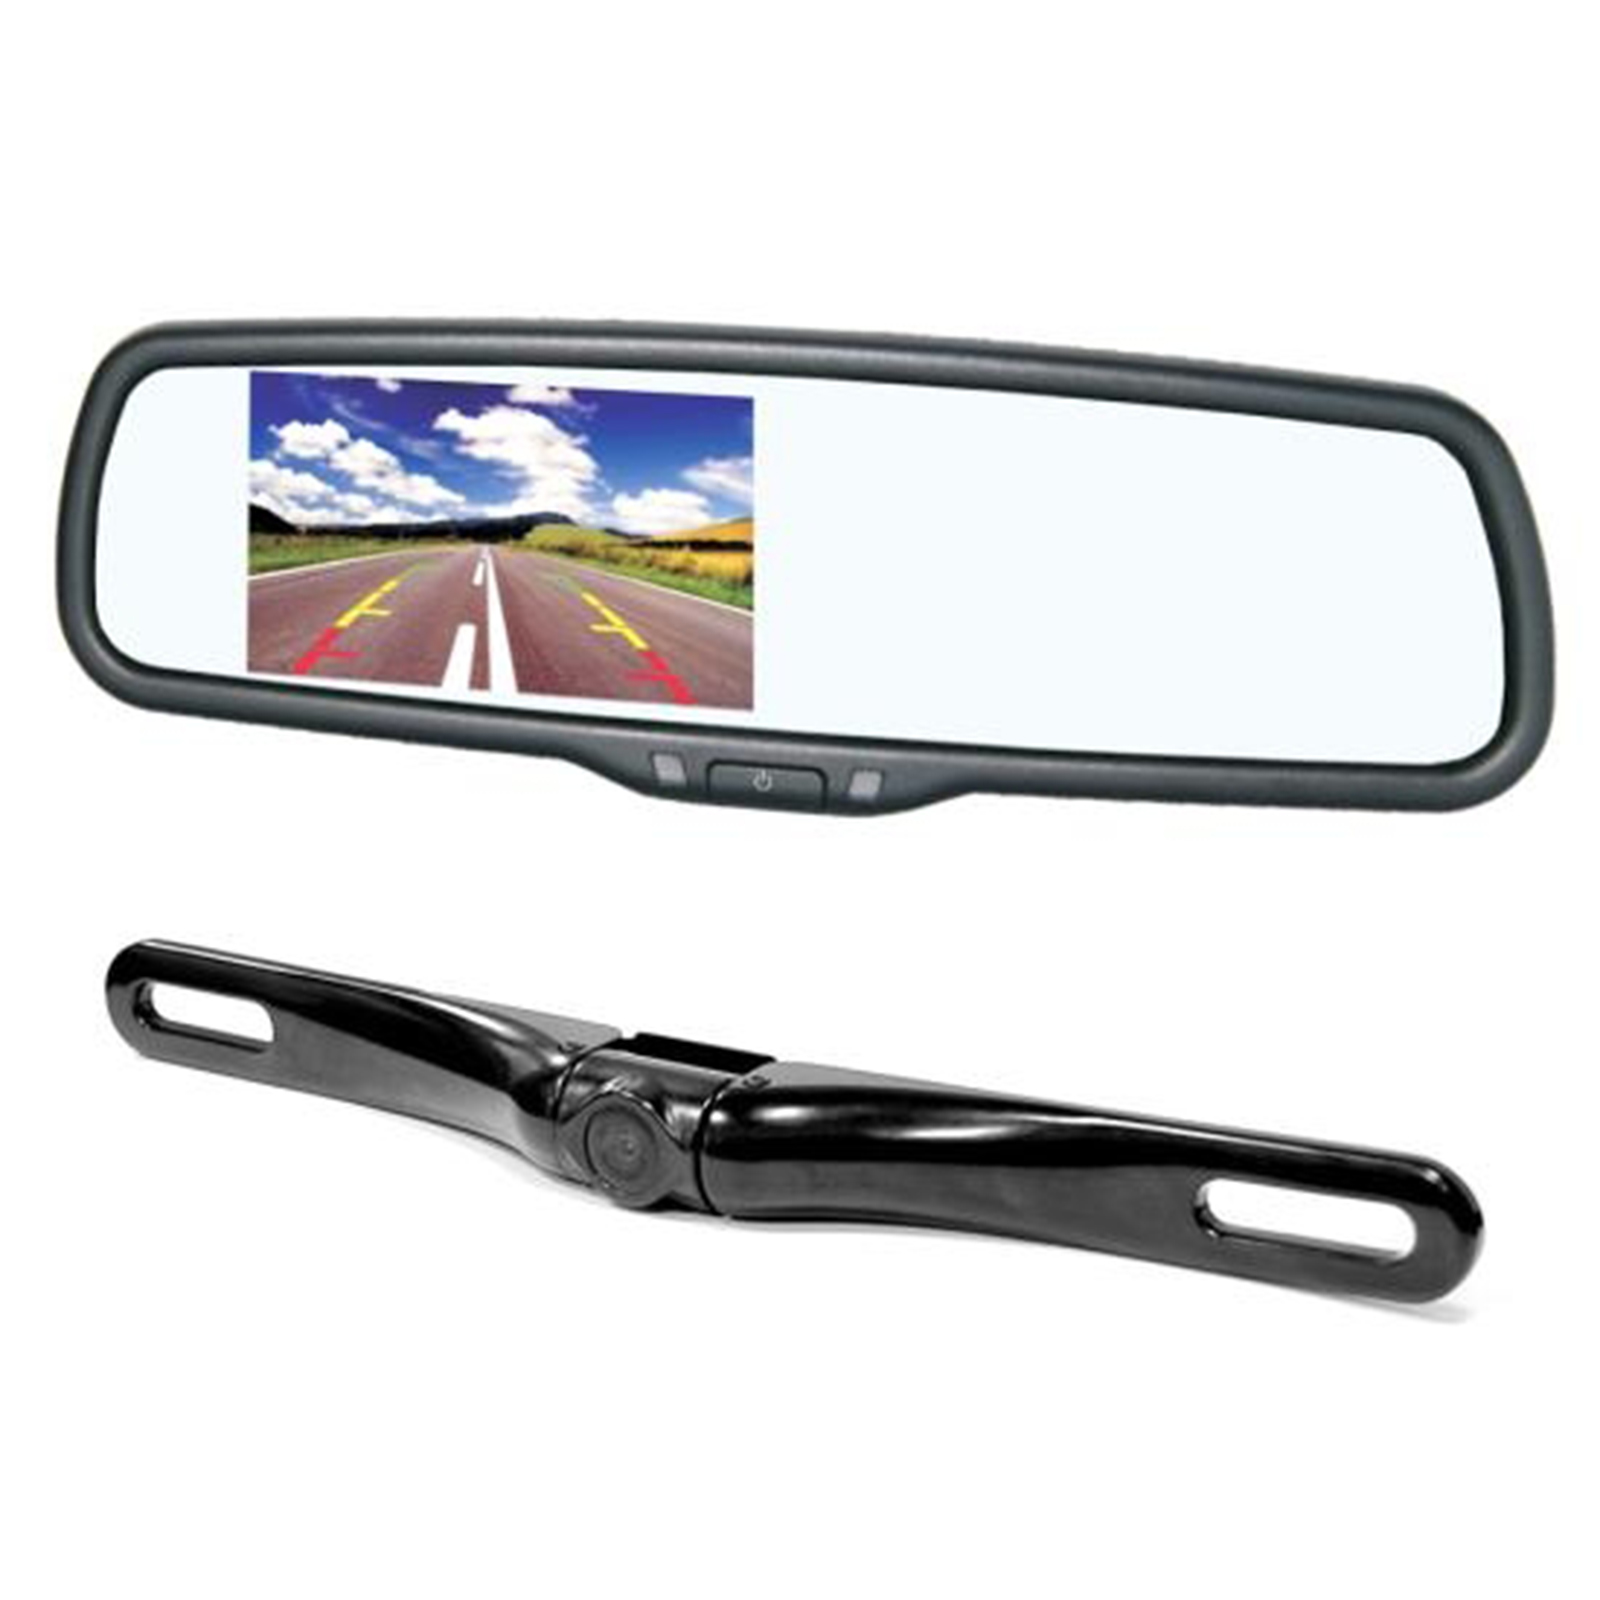 """Rearview Backup Parking Assist Camera & Display Monitor System Kit, License Plate Mount"